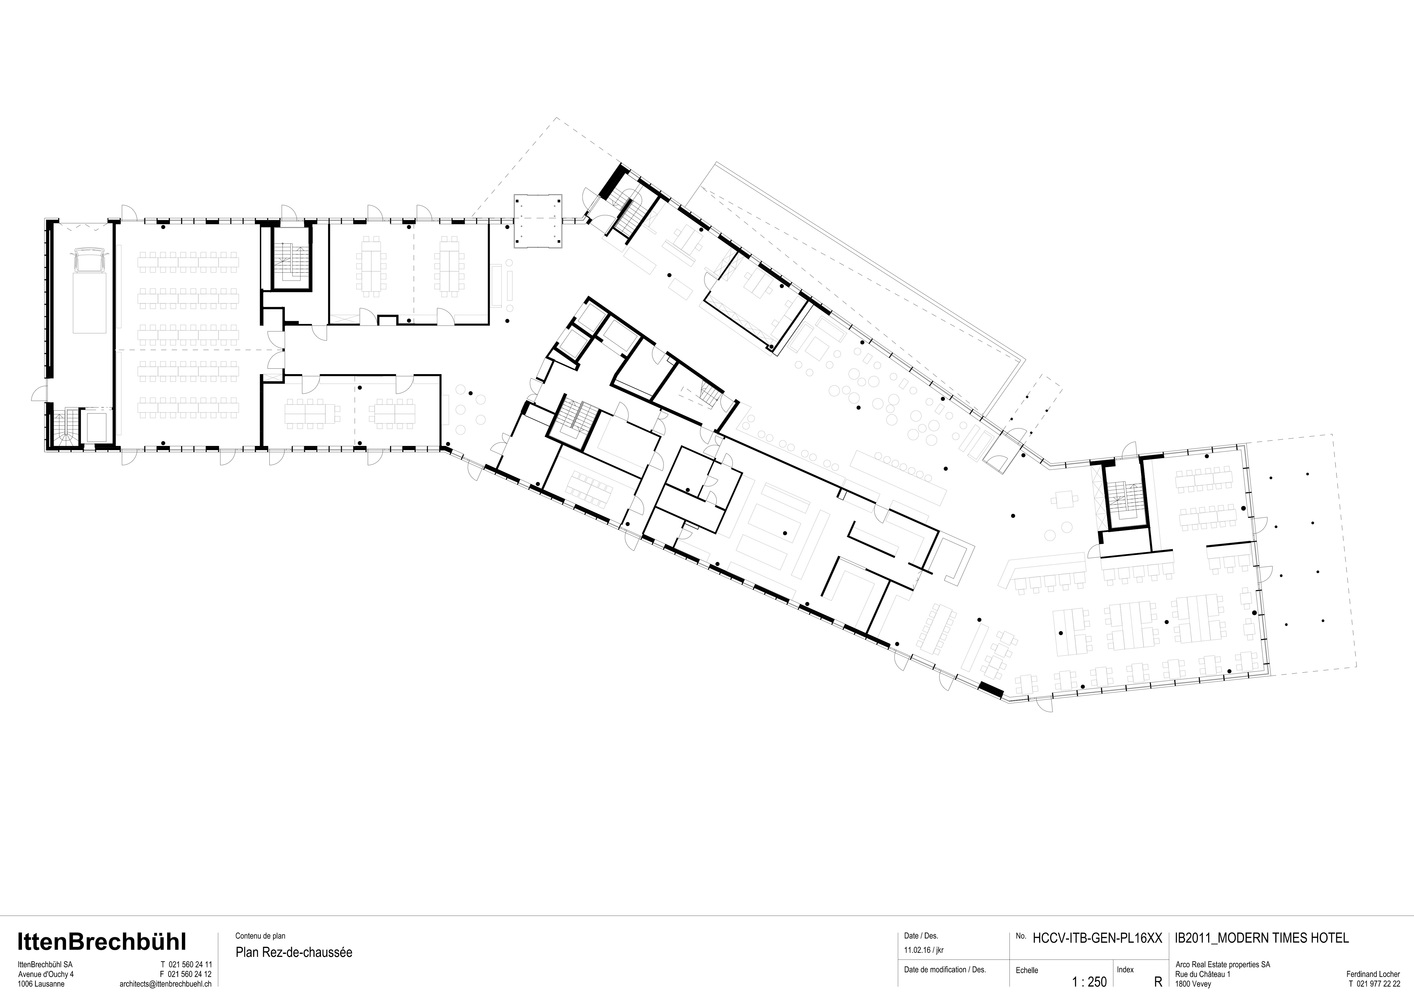 Gallery of modern times hotel itten brechb hl 24 for Modern site plan